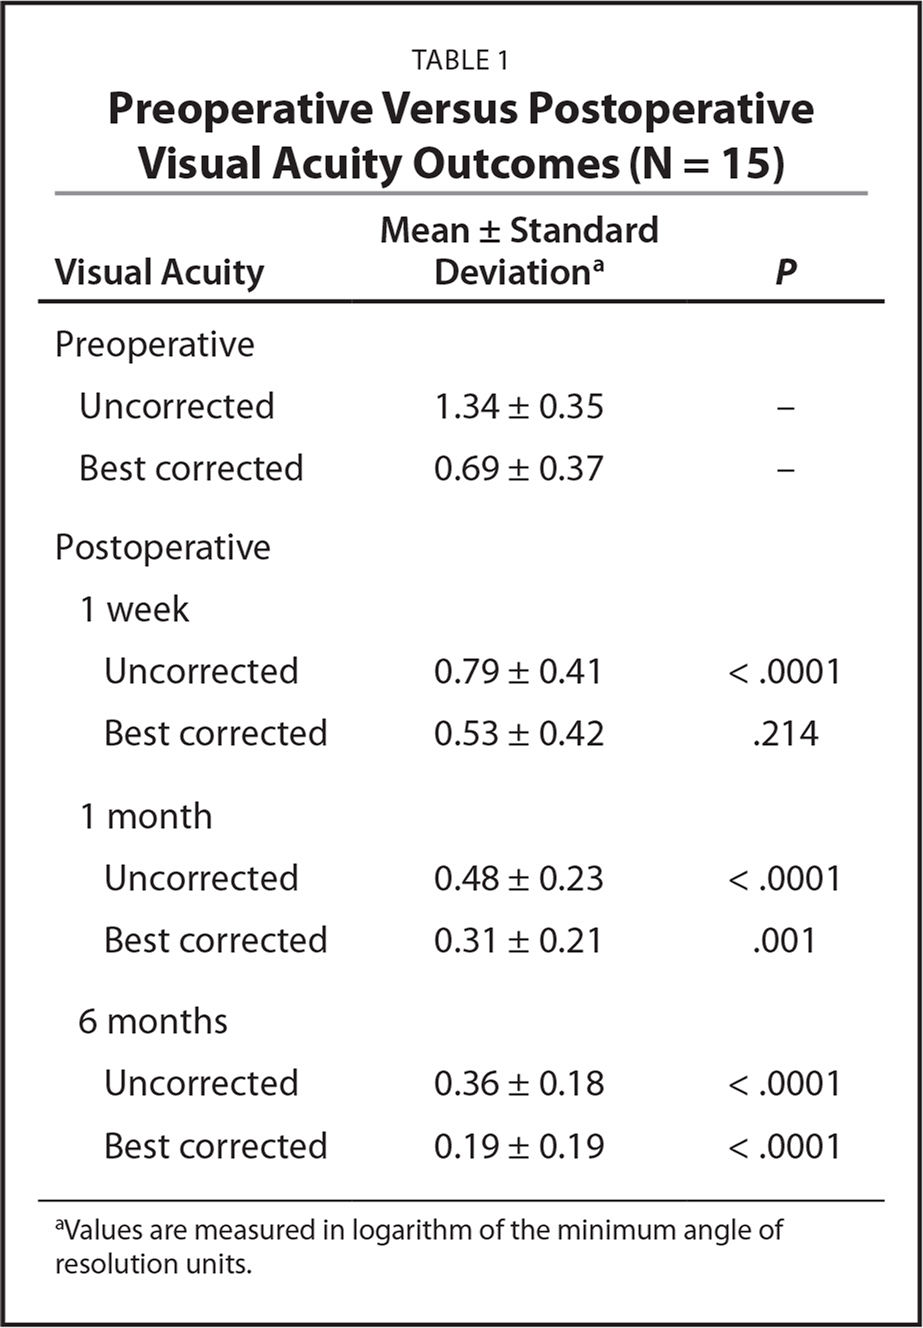 Preoperative Versus Postoperative Visual Acuity Outcomes (N = 15)